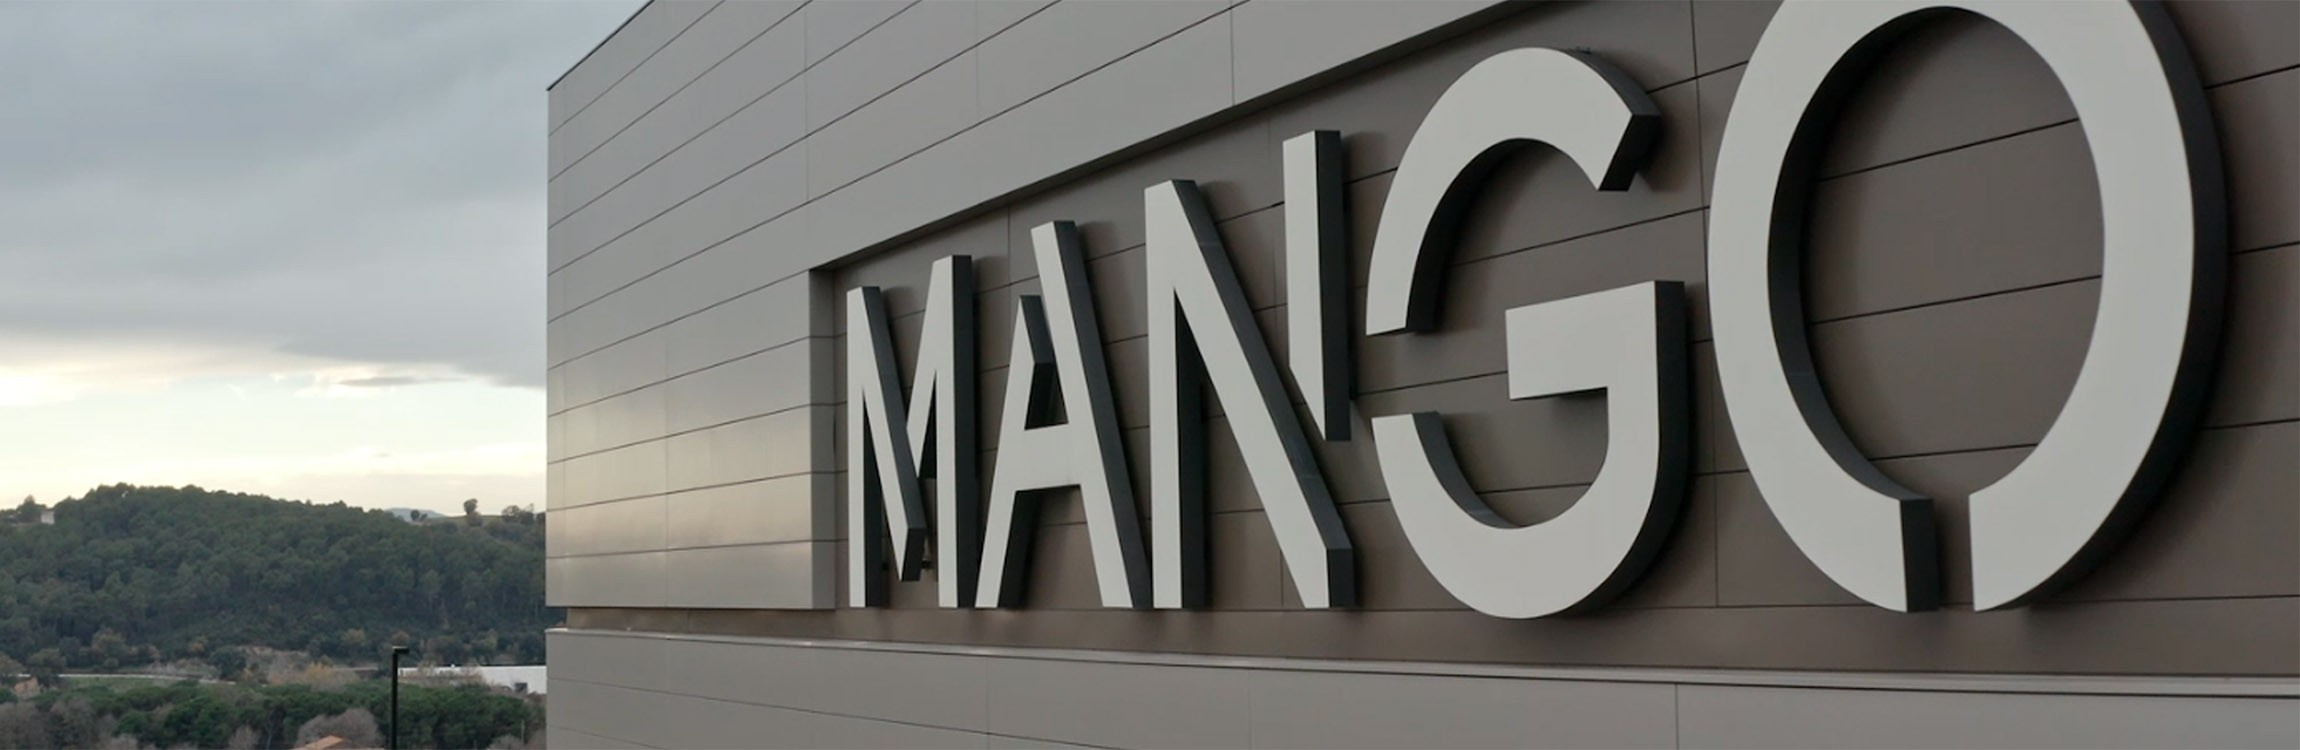 Mango: Efficient and streamlined process - from inbound to outbound.